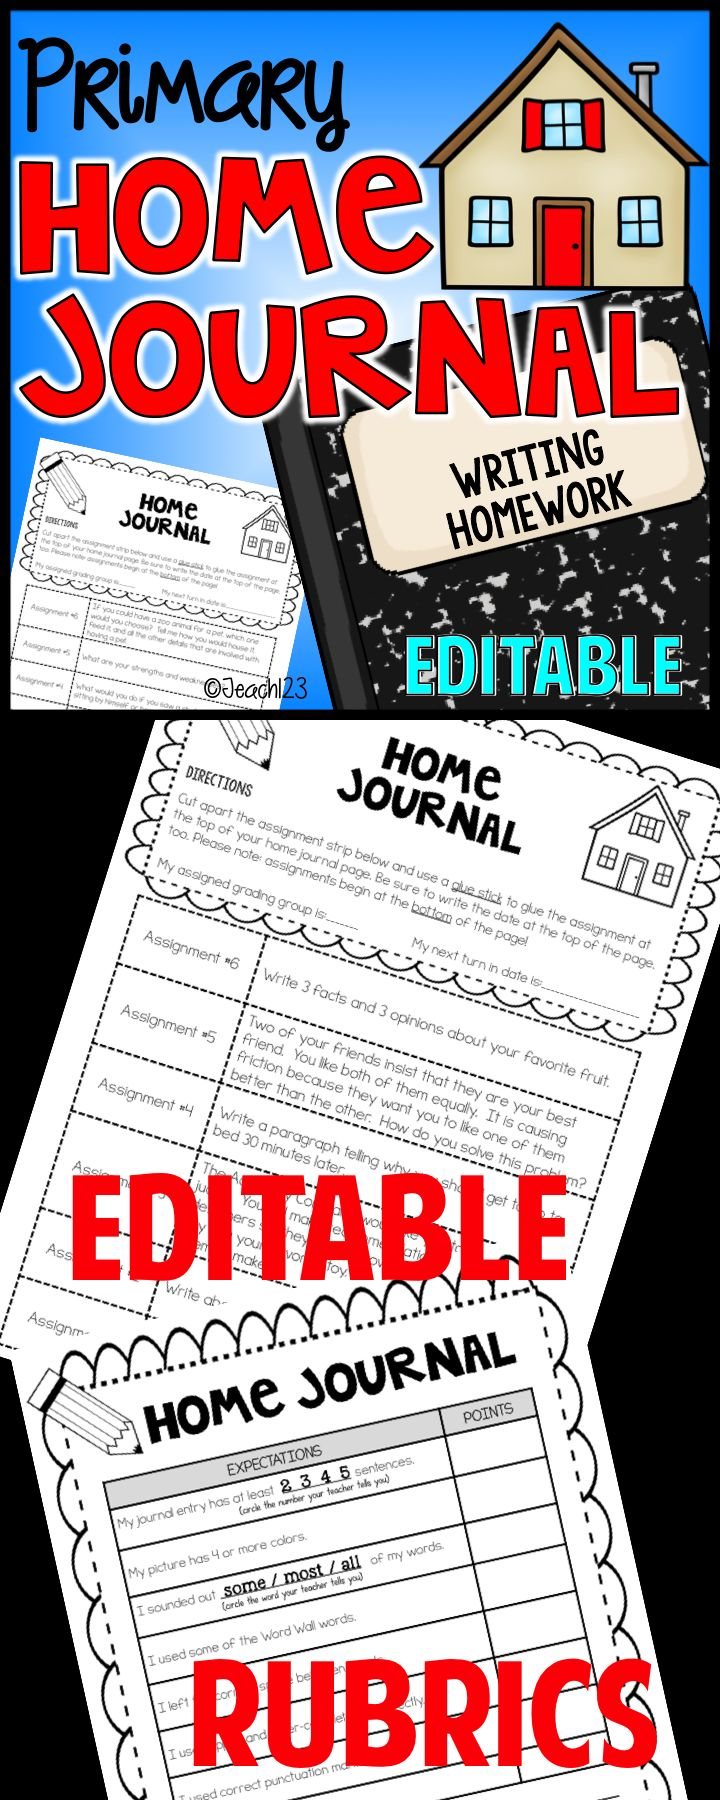 1st - 2nd Grade Writing Homework: Show growth in your students' writing using the First and Second Grade Writing Homework Journal program. This is the perfect way to strengthen your primary students' writing skills. There are ten months worth of assignments, plus four seasonal assignments and 3 extra assignments. The composition book of home journal entries make a wonderful portfolio show your students' growth! paid